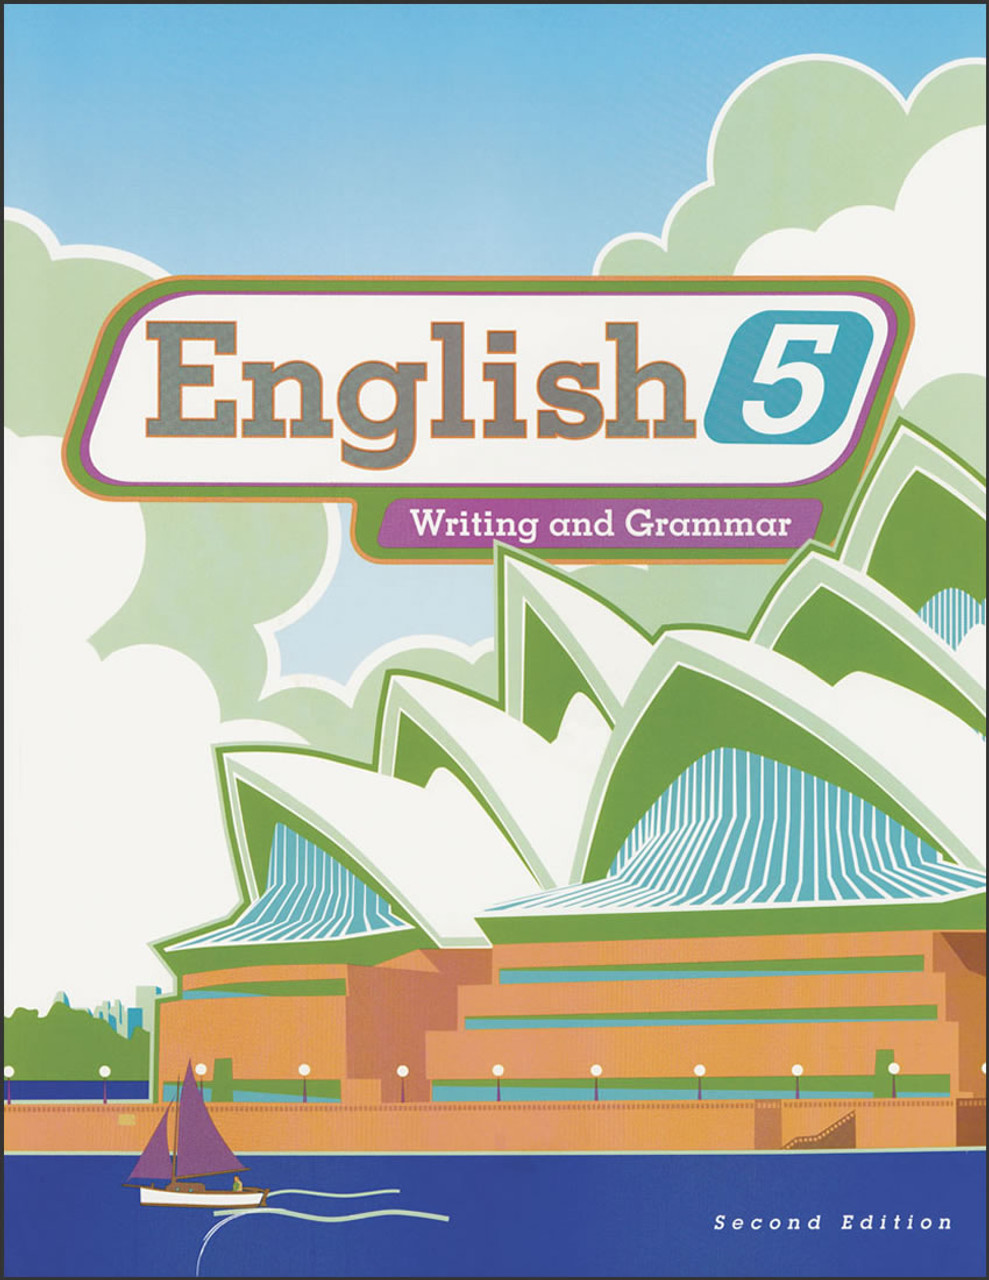 English 5, 2nd edition